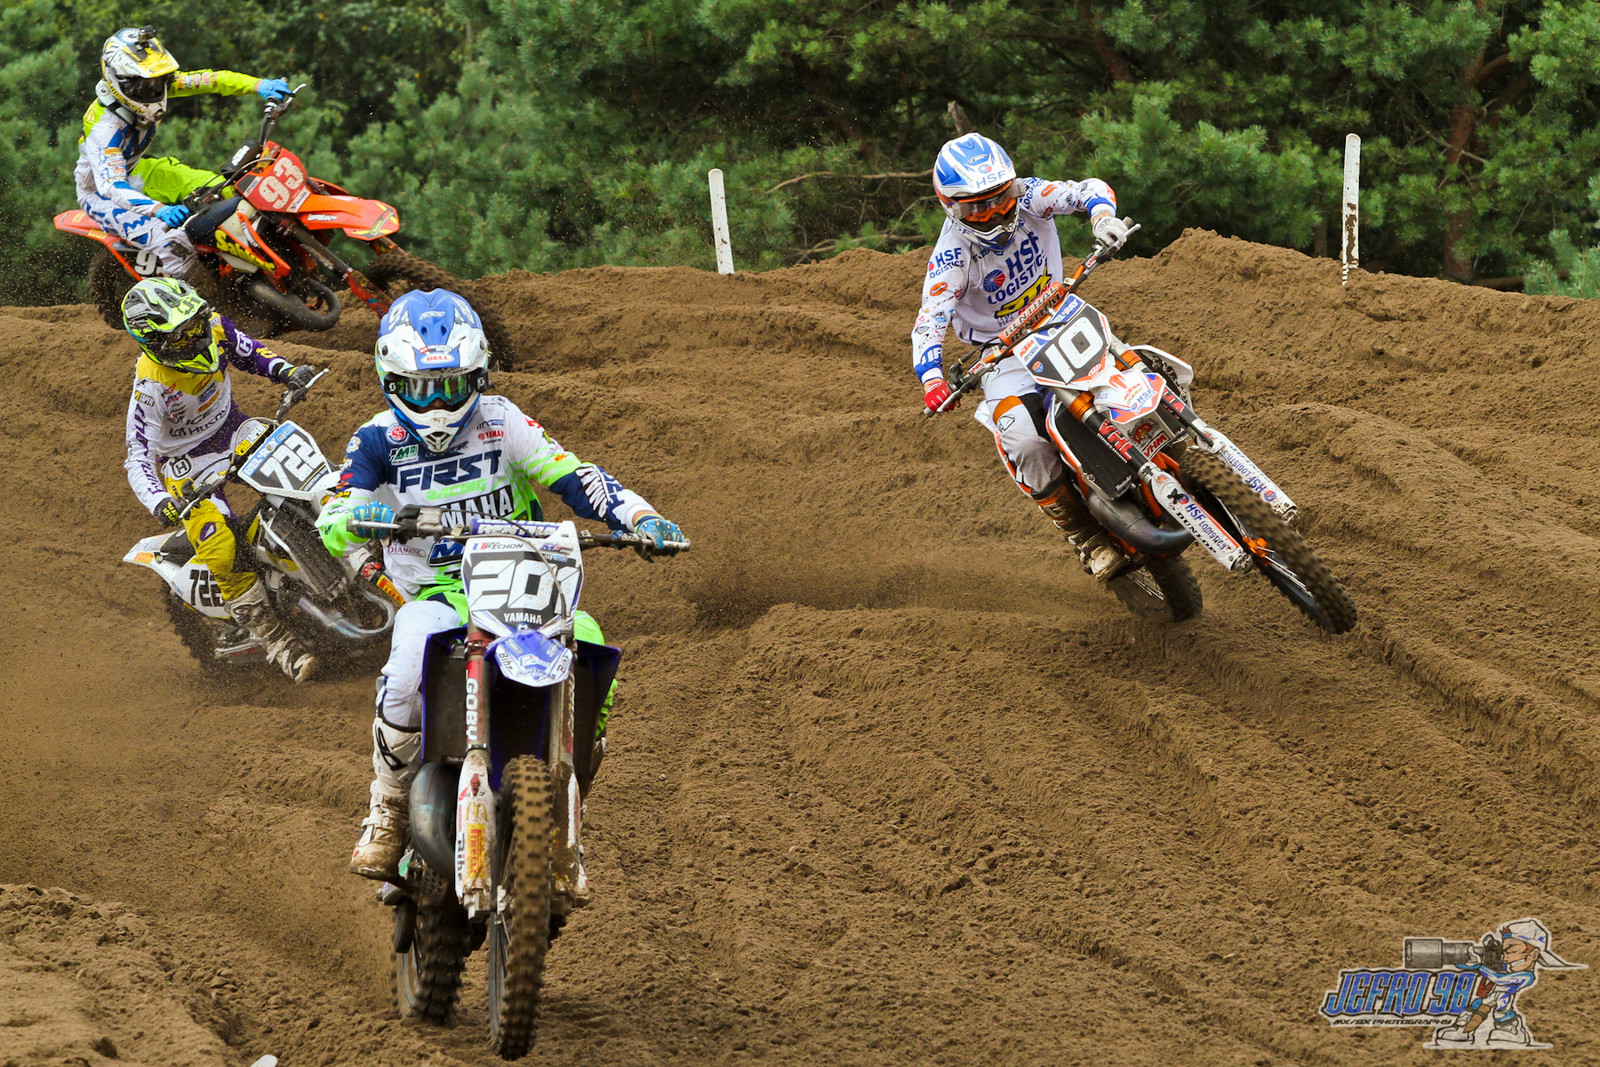 EMX125 - Photo Gallery: MXGP of Limburg - Motocross Pictures - Vital MX